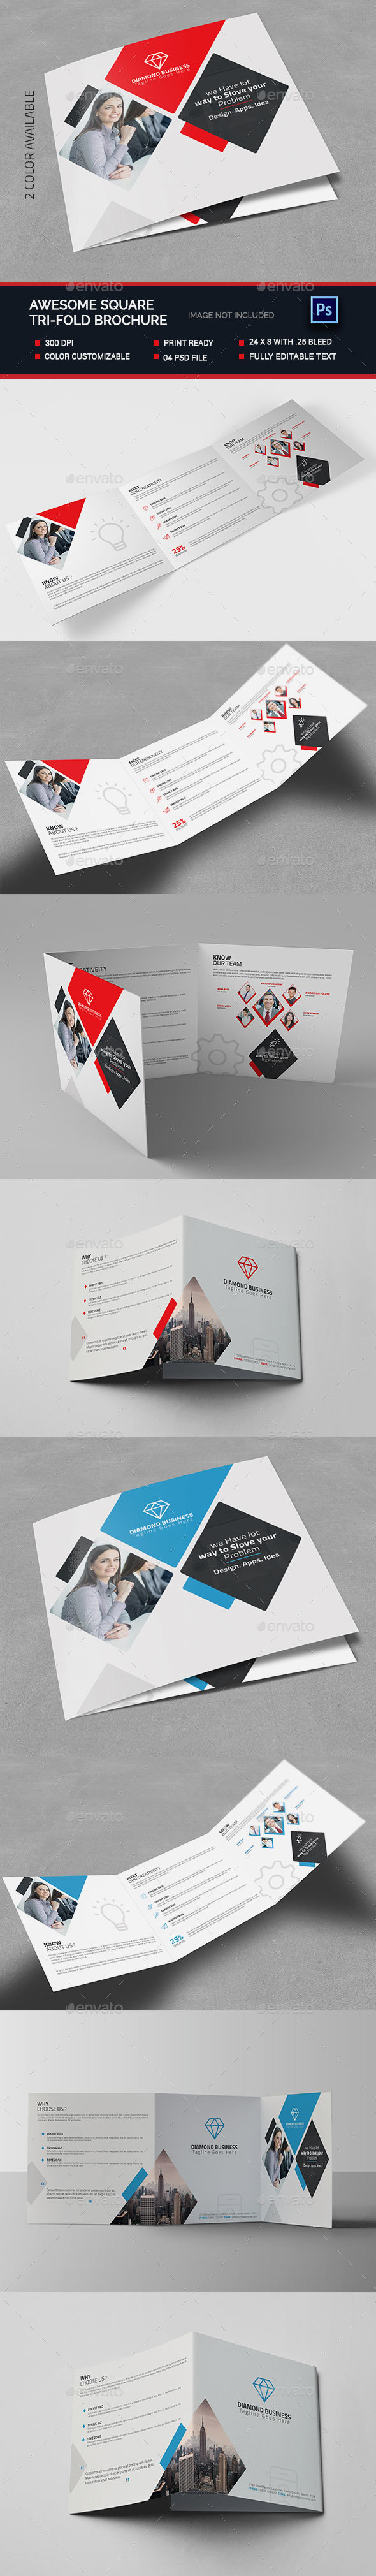 Awesome Square Tri-fold Brochure  - Brochures Print Templates